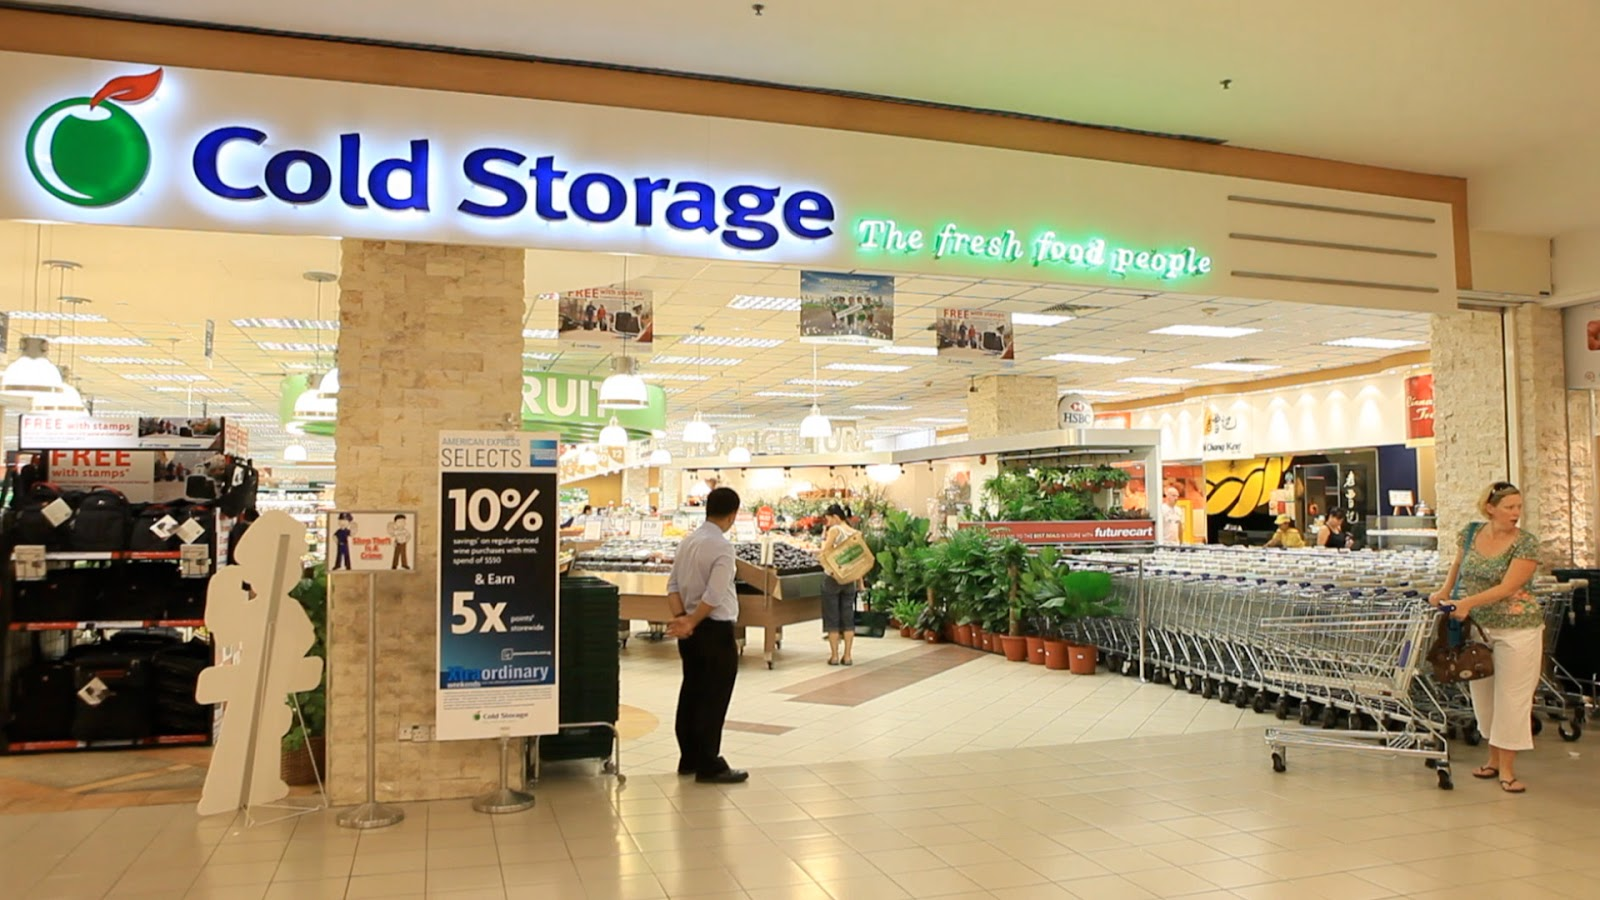 ntuc fairprice vs cold storage This report contains assessments of commodity and trade issues made by dominated by majo r supermarket retailer cold storage and ntuc fairprice.